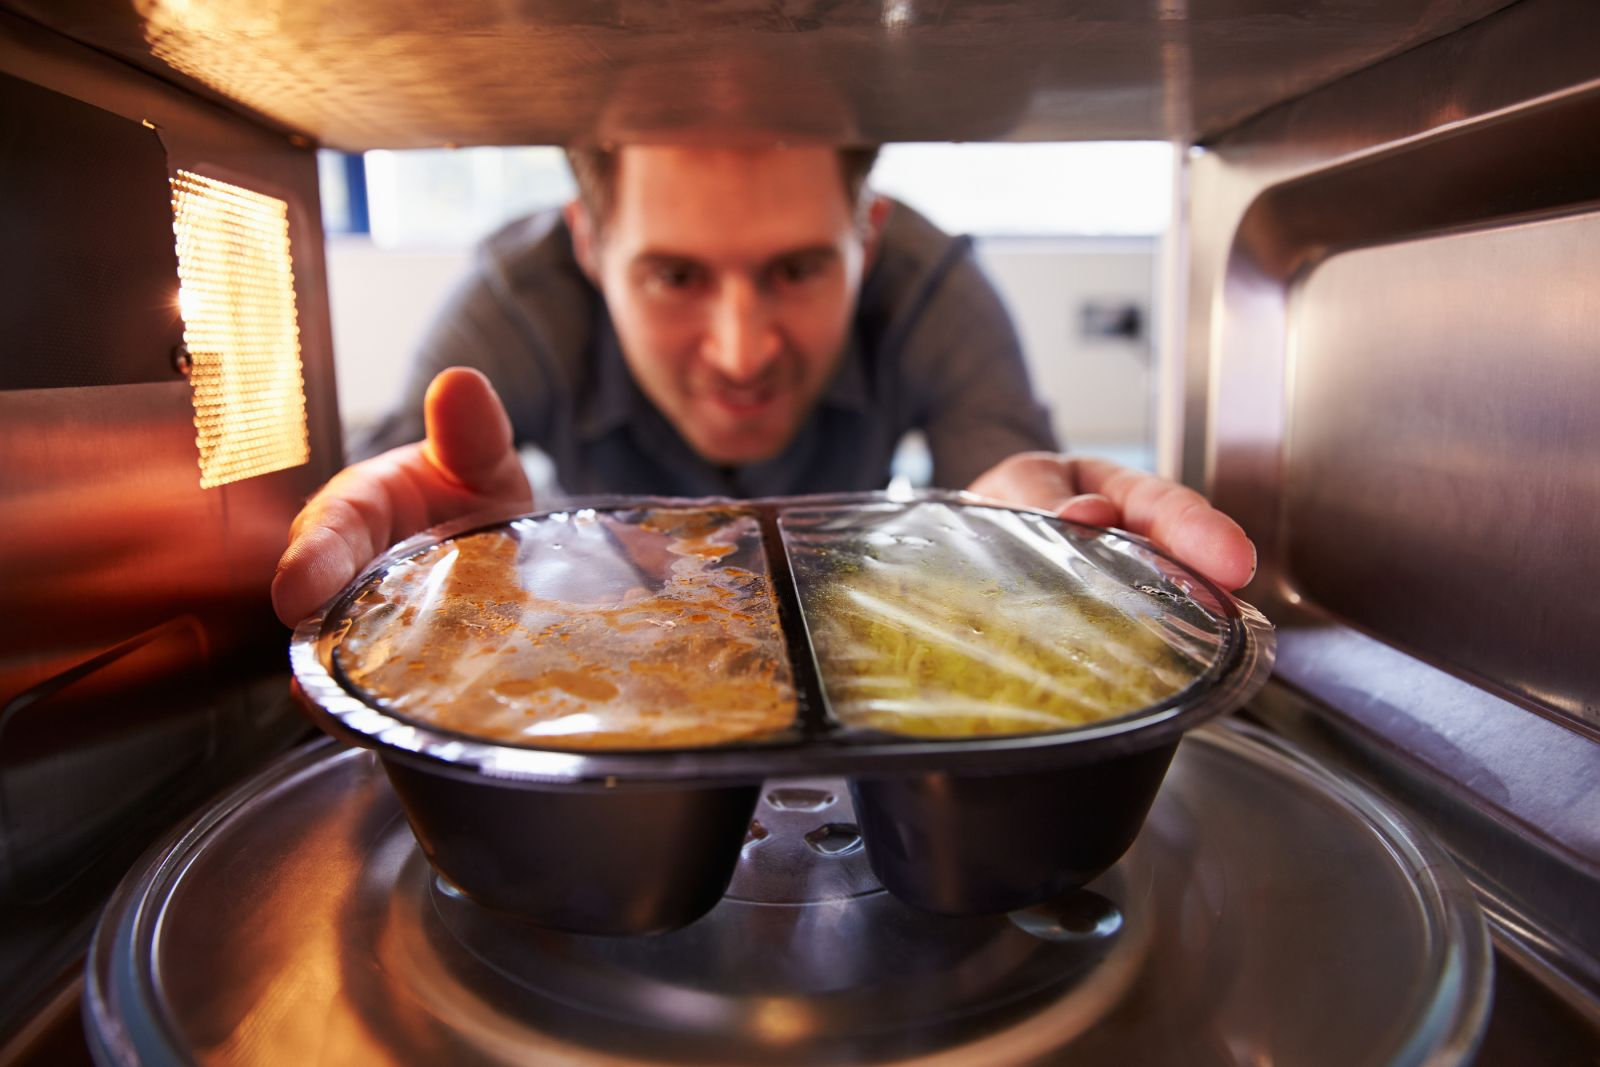 5 Diseases Caused By Microwave Ovens